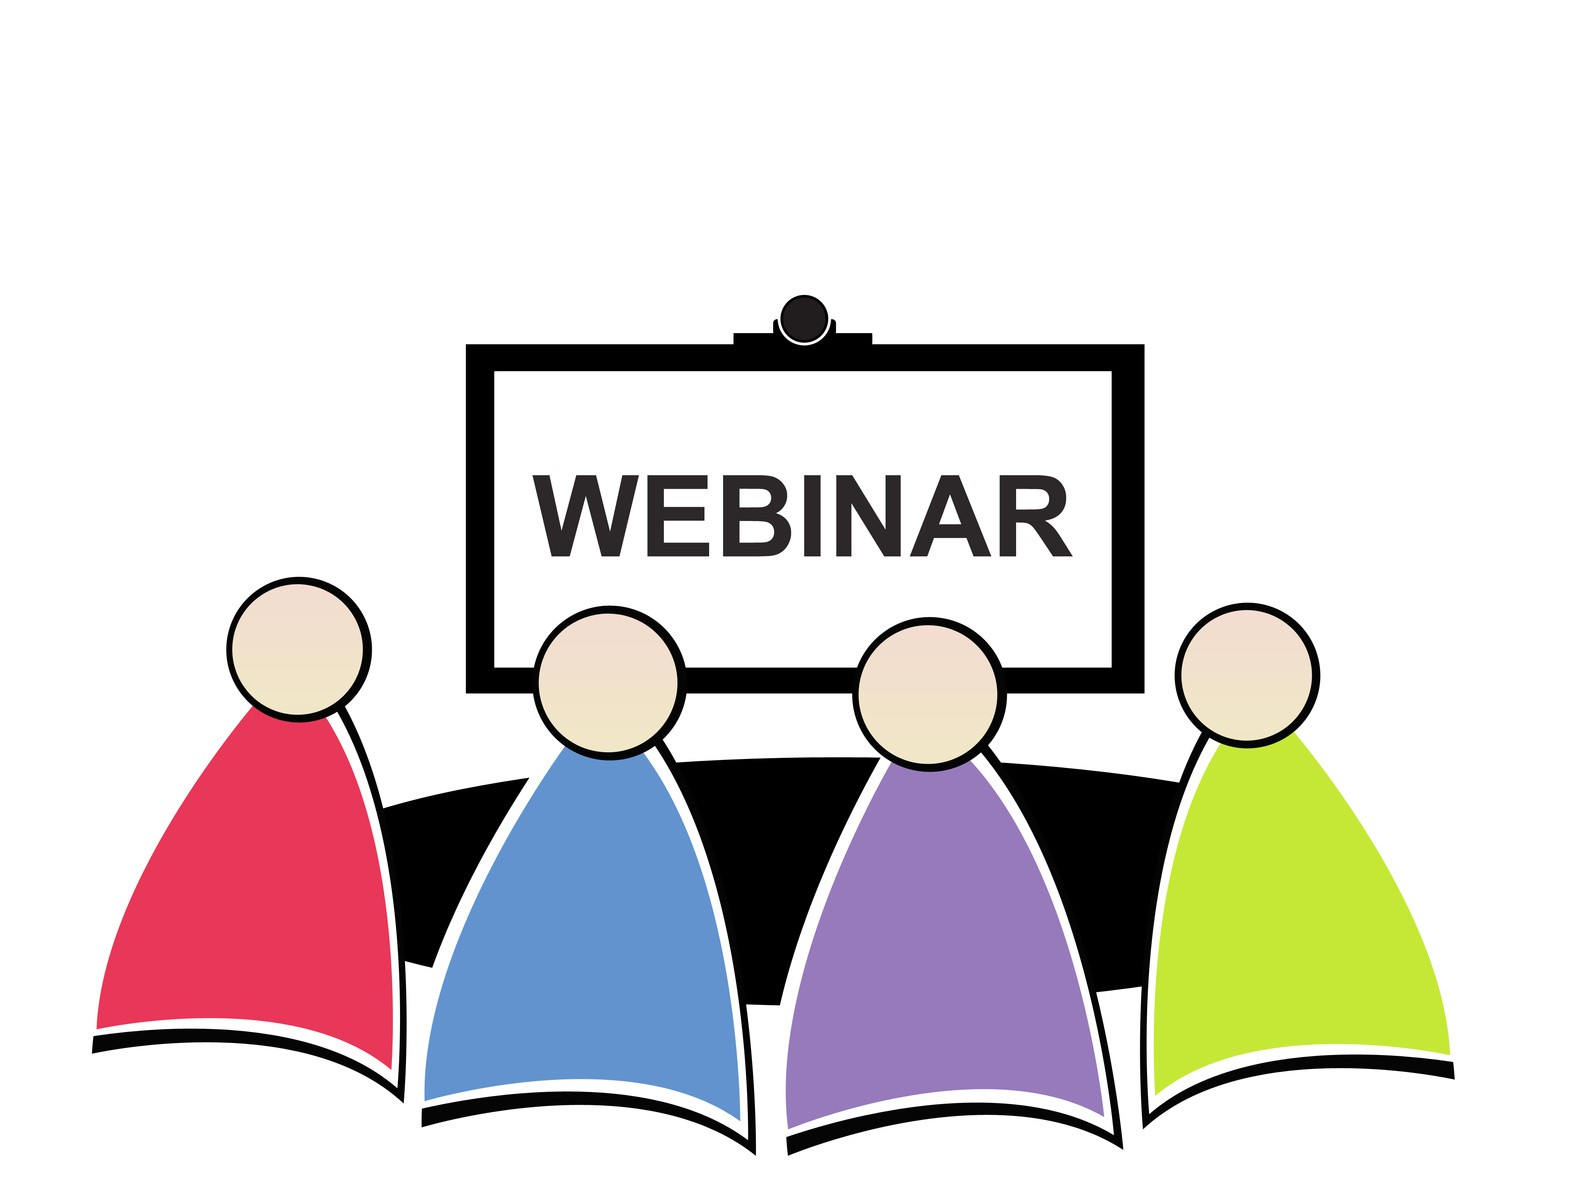 4 Common Mistakes Made by Live Webinar Presenters